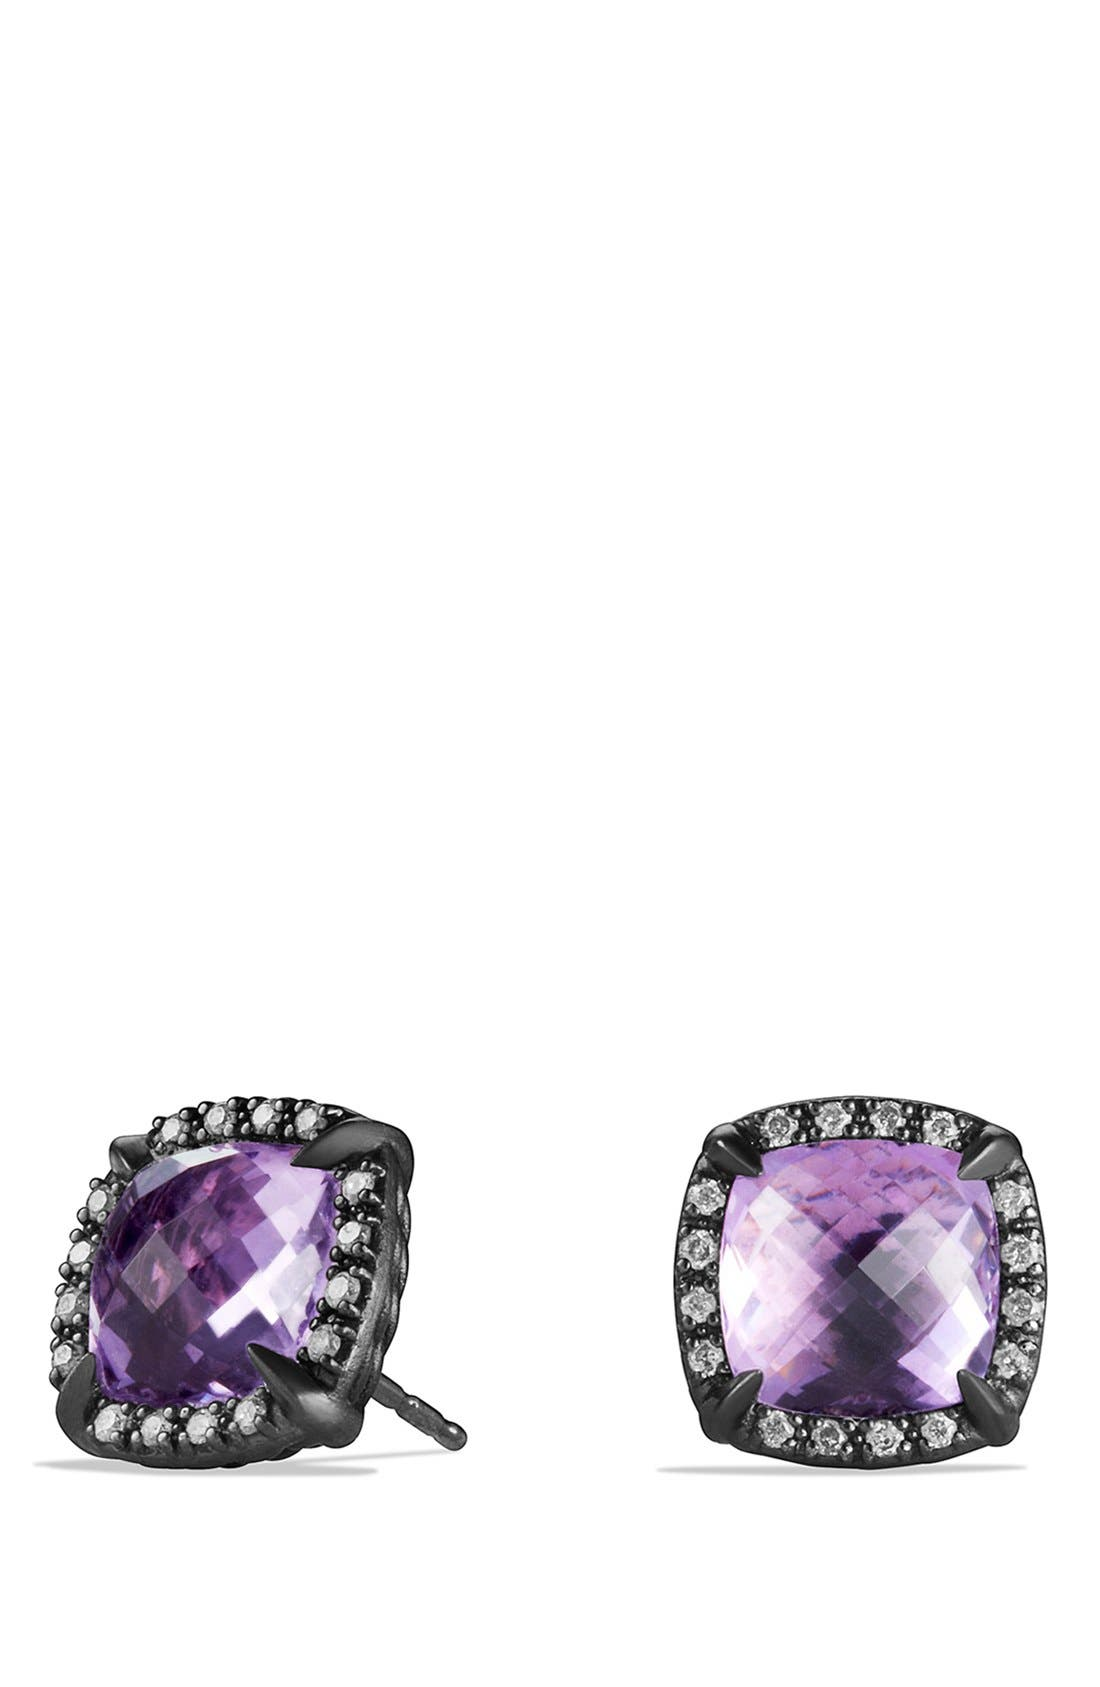 DAVID YURMAN 'Châtelaine' Earrings with Semiprecious Stone and